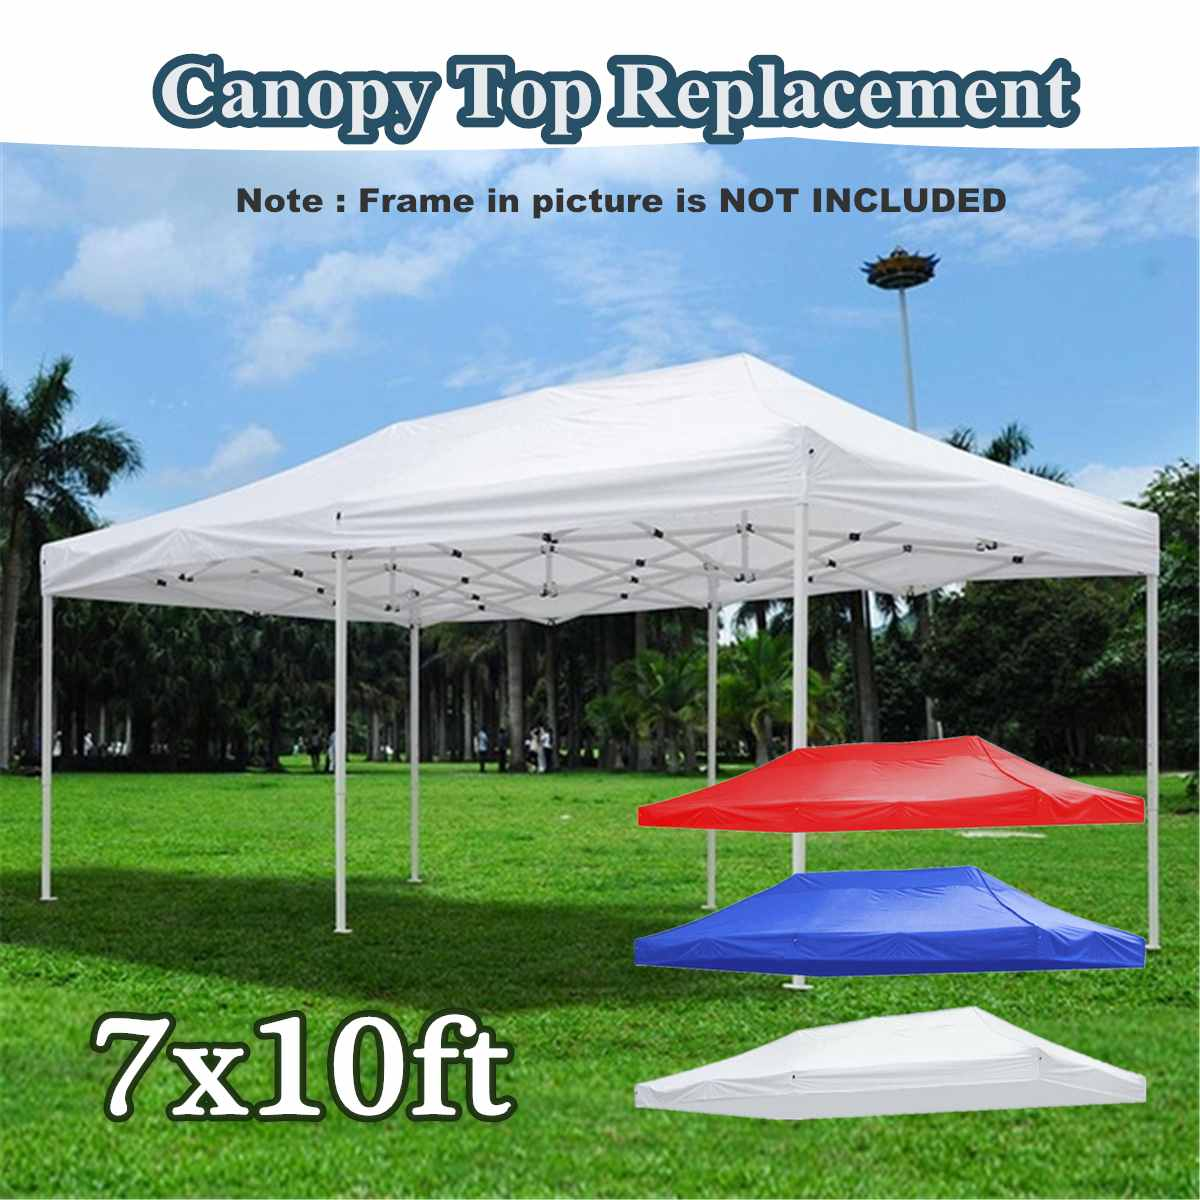 New 2x3m Gazebo Tents 3 Colors Waterproof Garden Tent Gazebo Canopy Outdoor Marquee Market Tent Shade Party Pawilon Ogrodowy